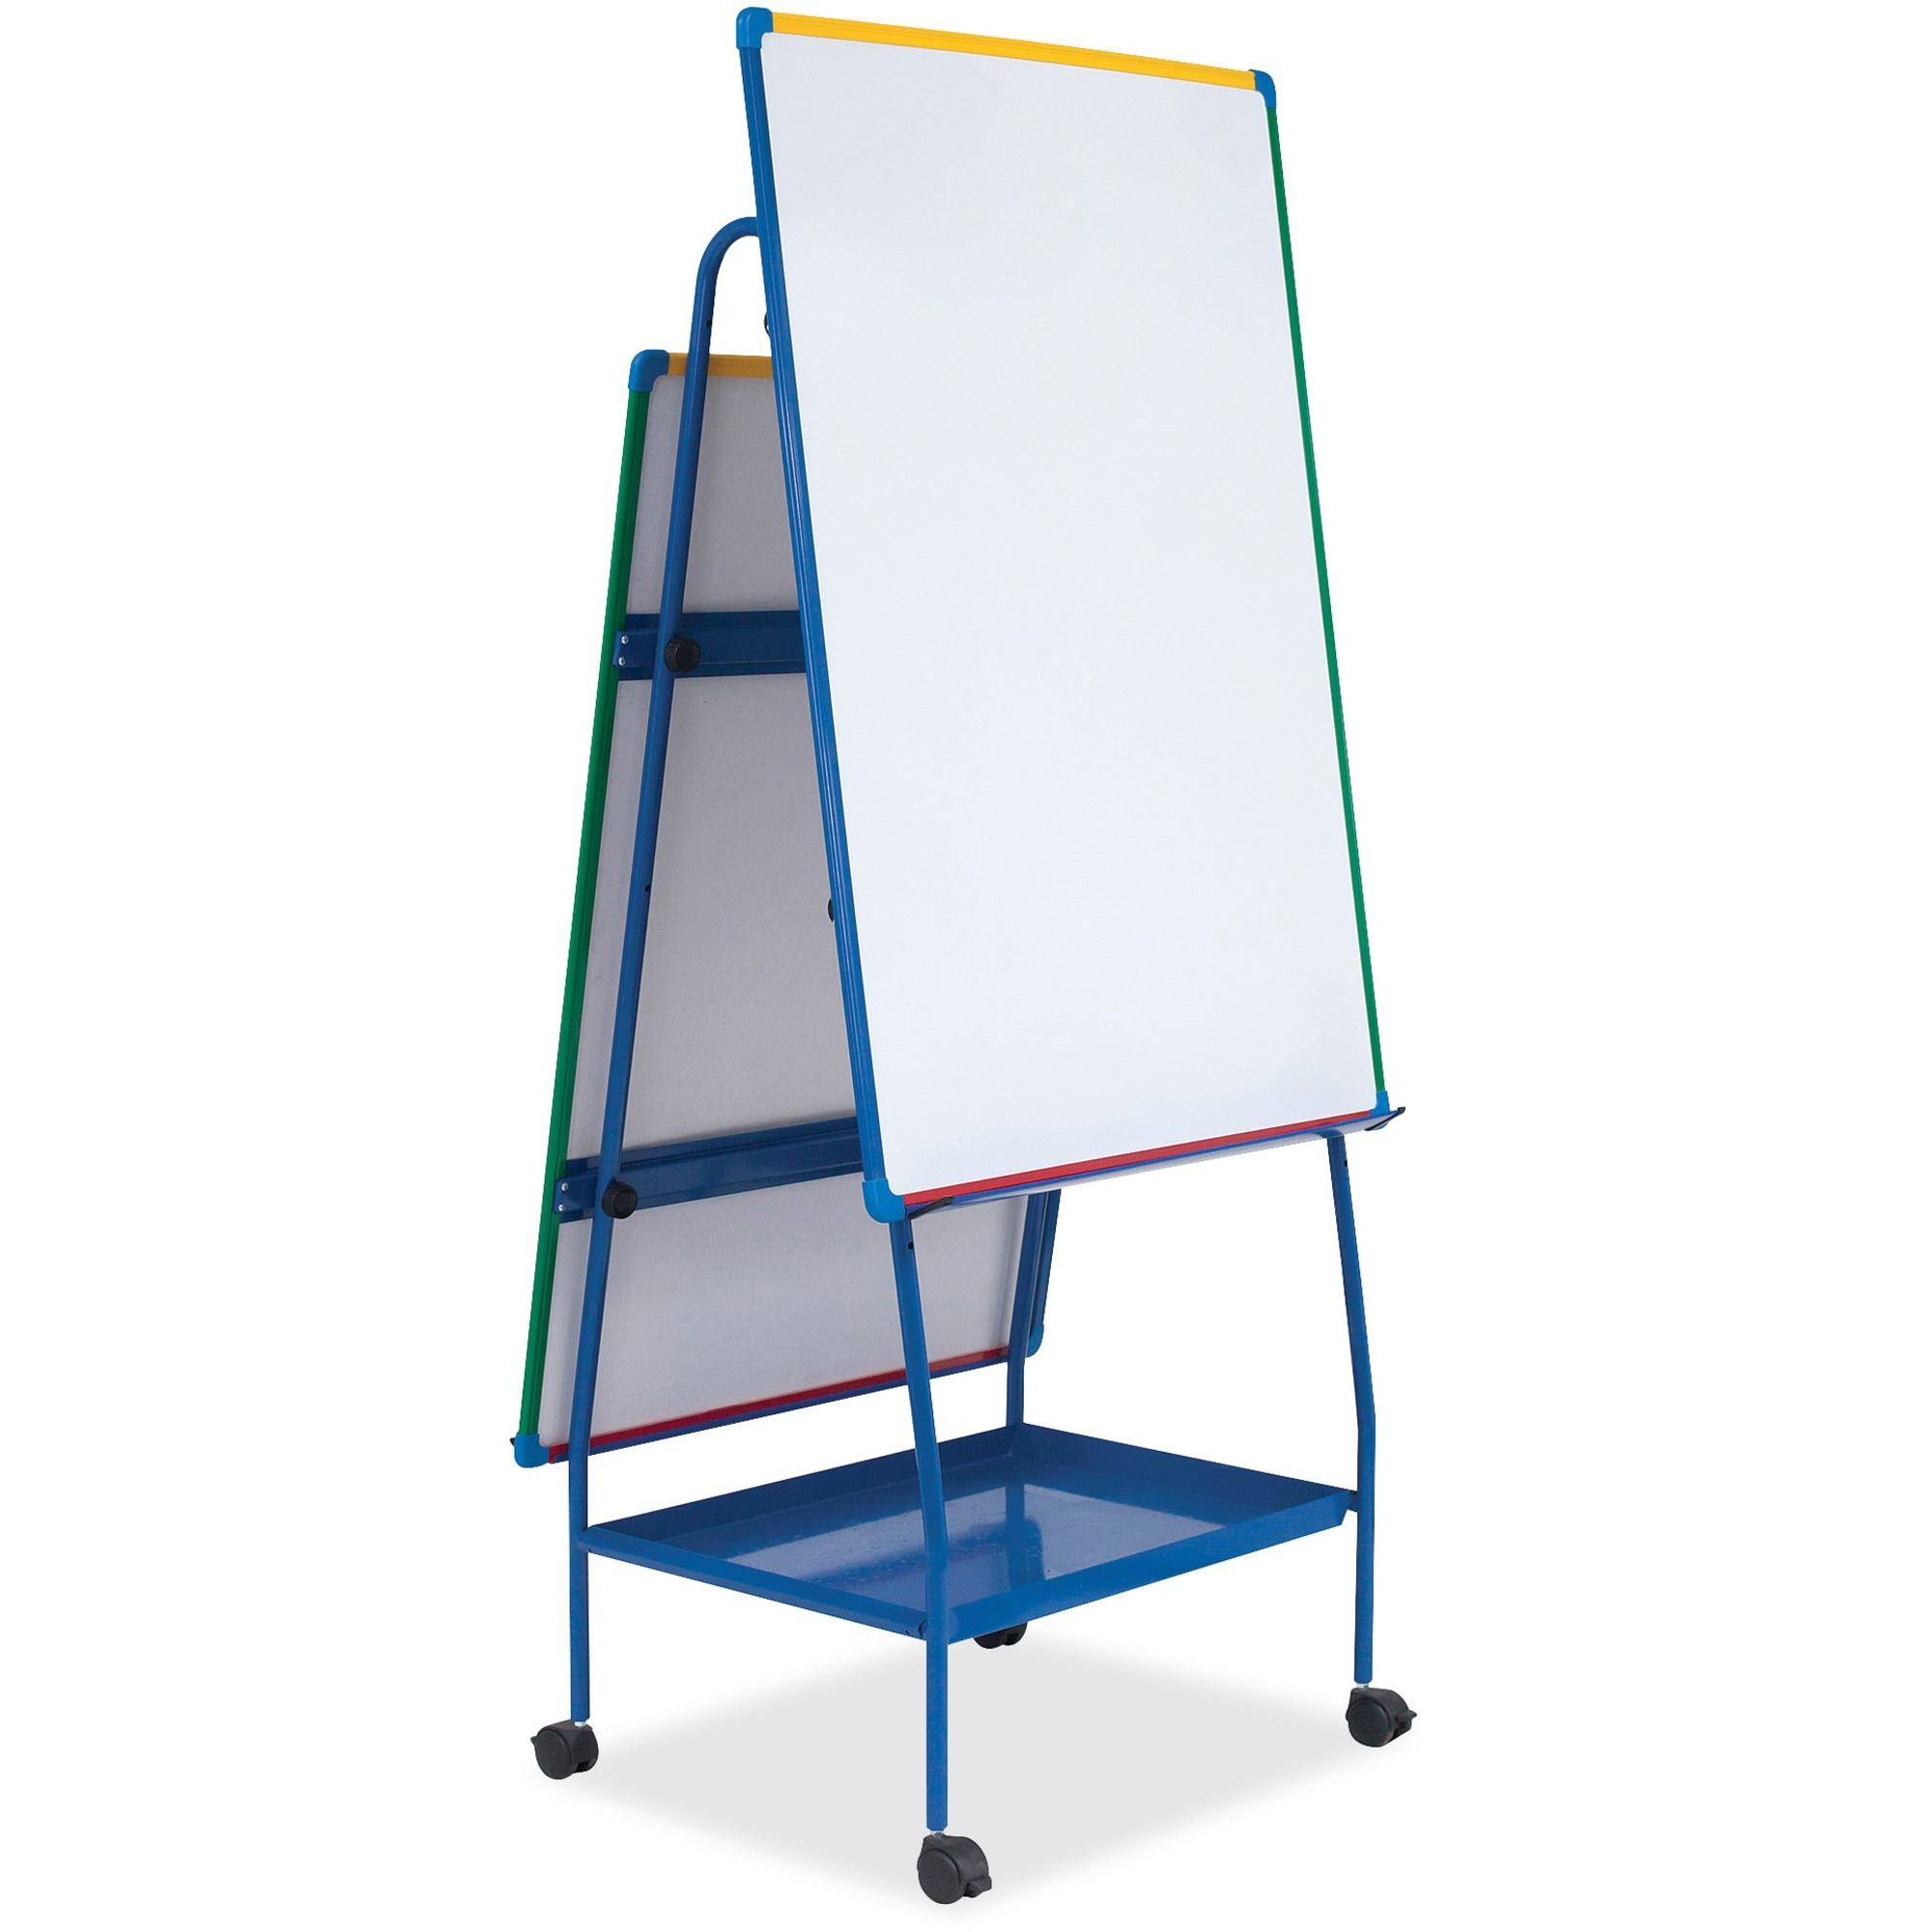 Bi-office Dry-erase AdjustableDoublee-sided Easel - White Surface - Rectangle - Assembly Required - 2 / Each